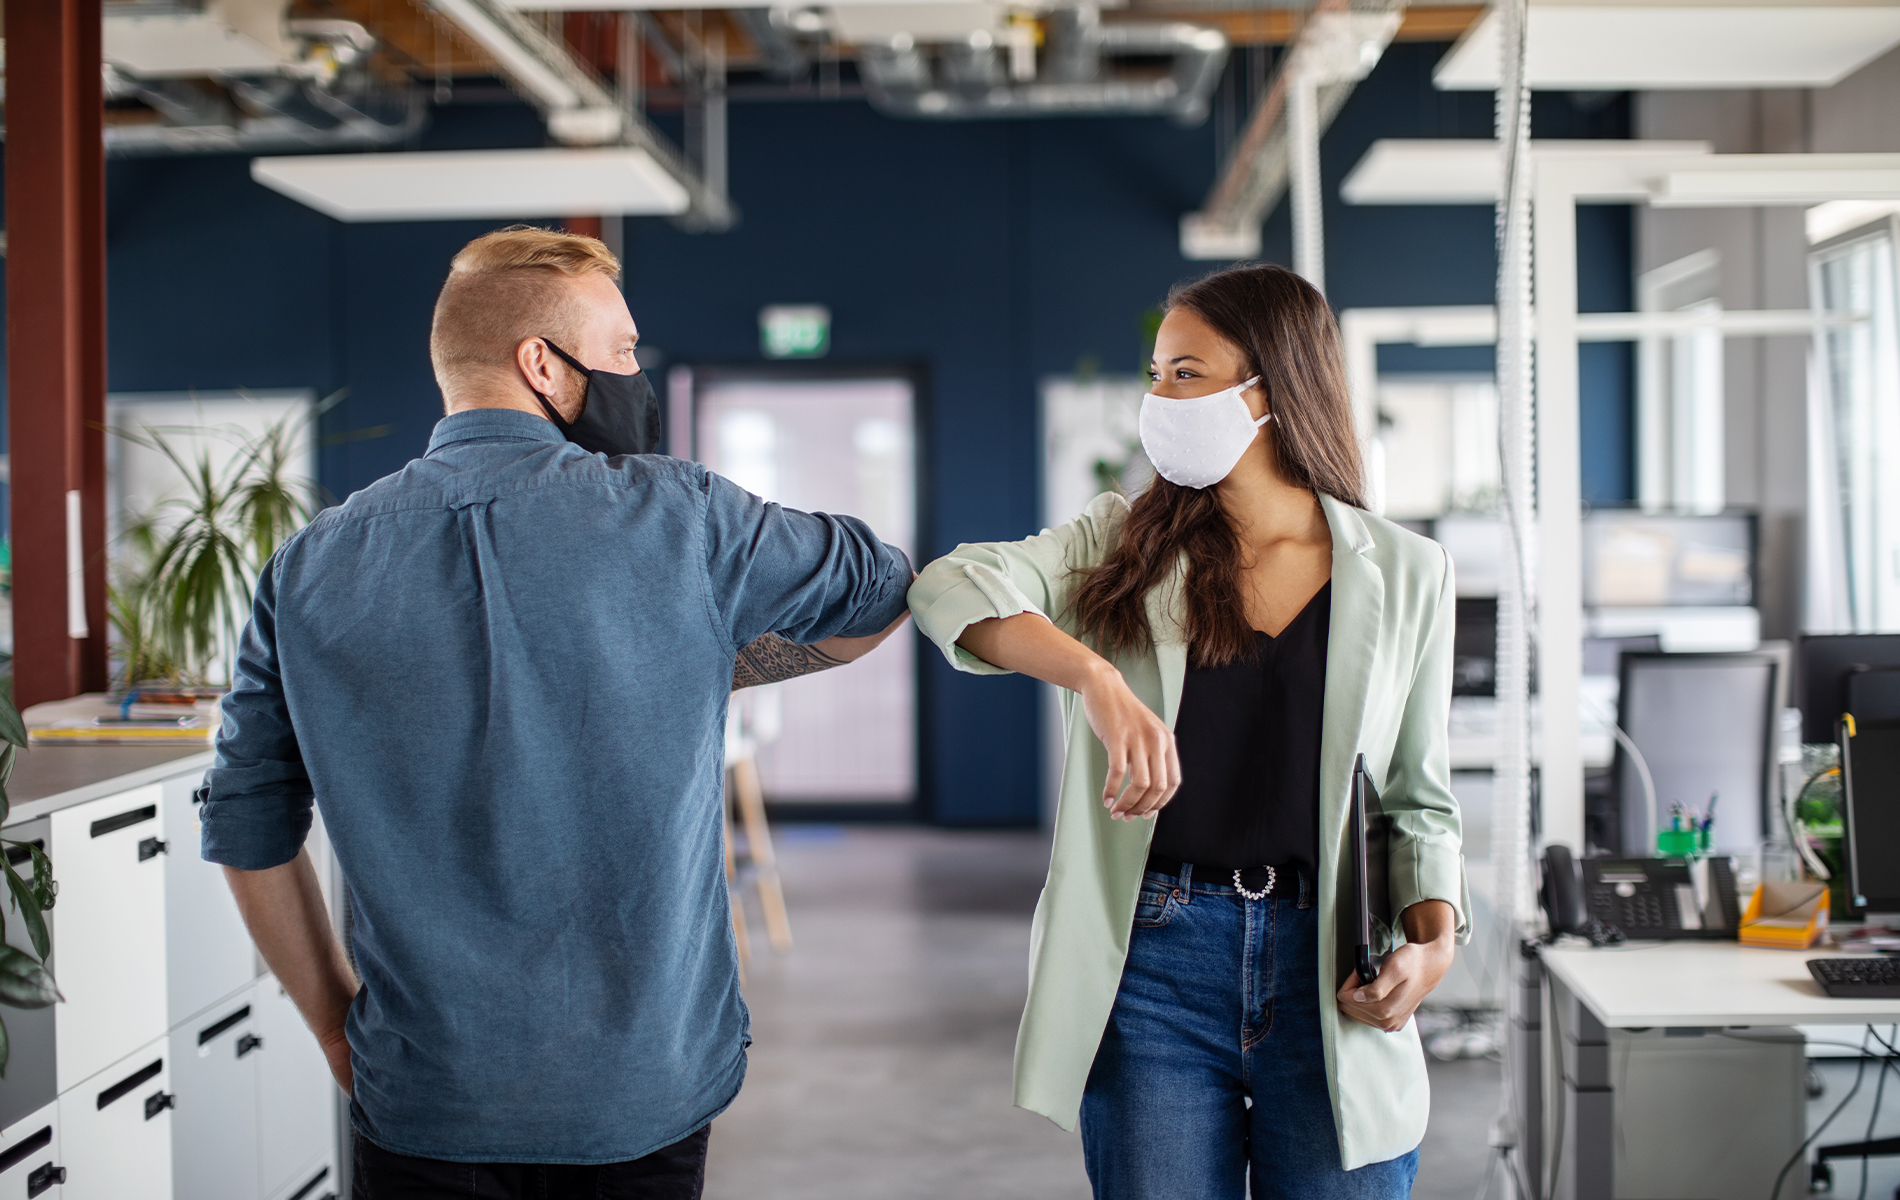 Colleagues greeting each other with masks on.